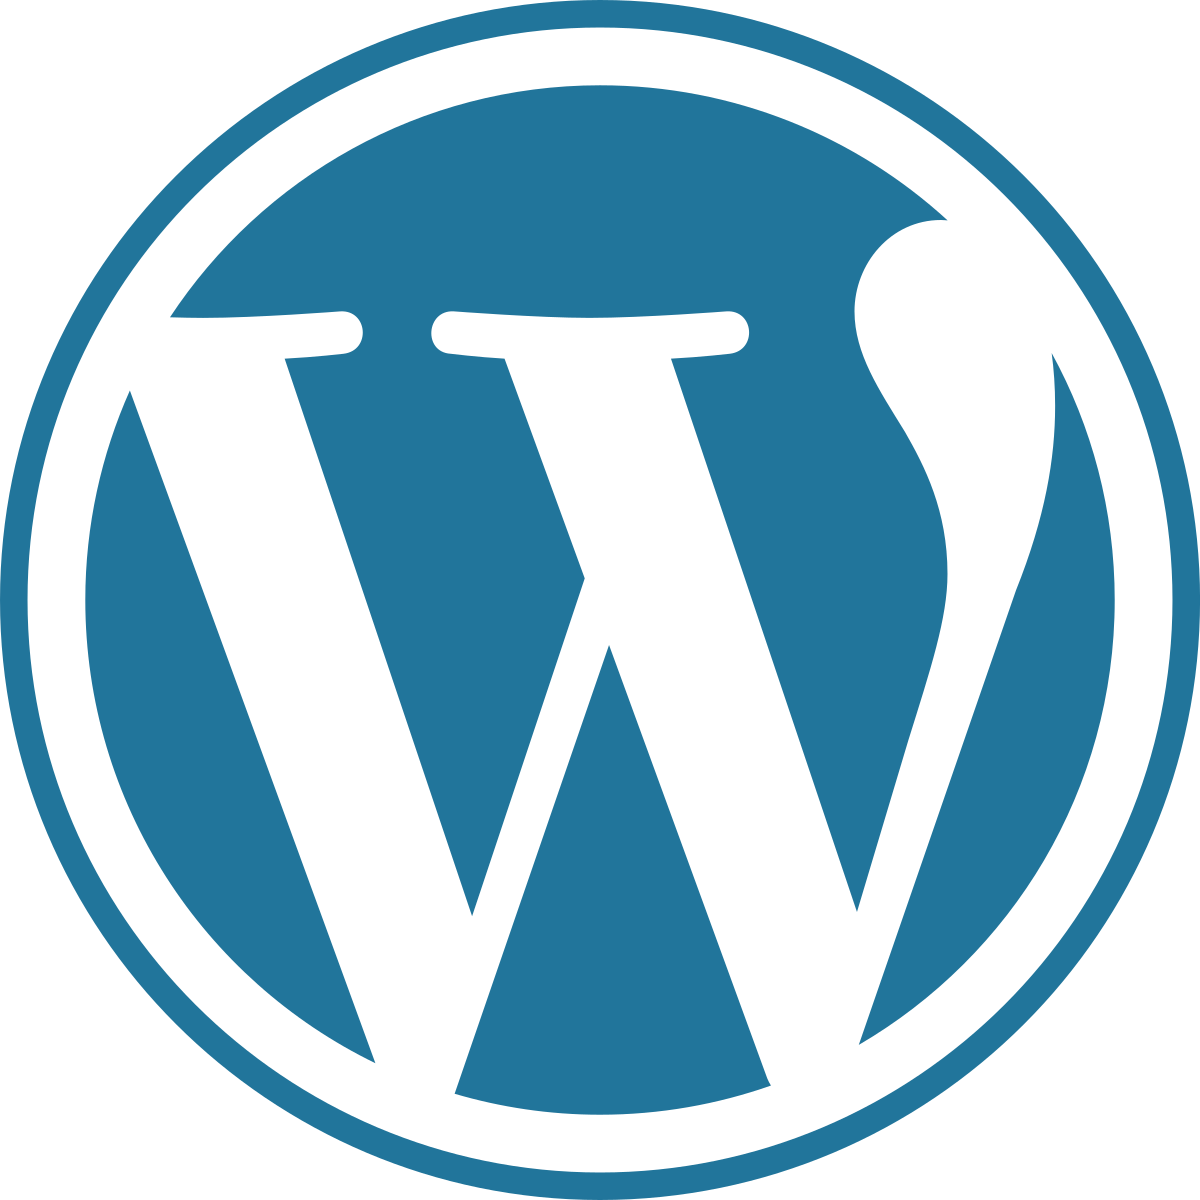 WordPress_blue_logo_svg.png